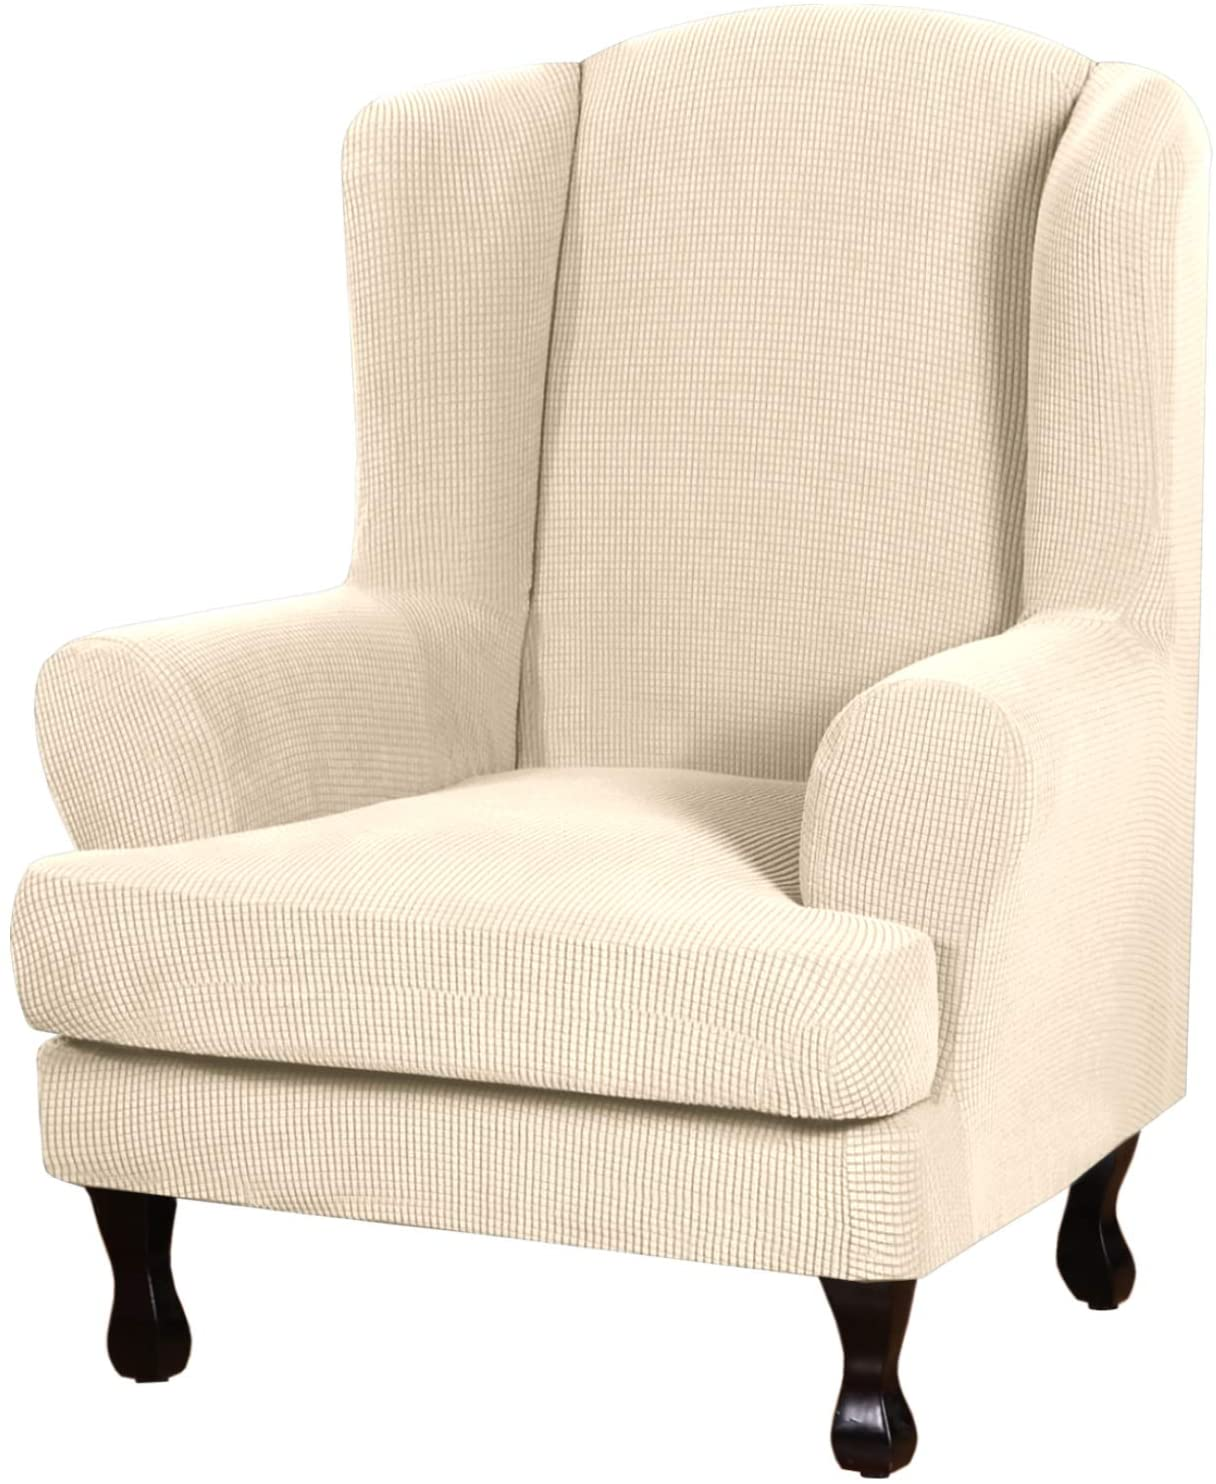 2 Piece Stretch Jacquard Wingback Chair Covers Slipcovers Wing Chair Covers (Base Cover Plus Seat Cushion Cover) Furniture Covers for Wingback Chairs, Form Fitted Thick Soft, Biscotti Beige